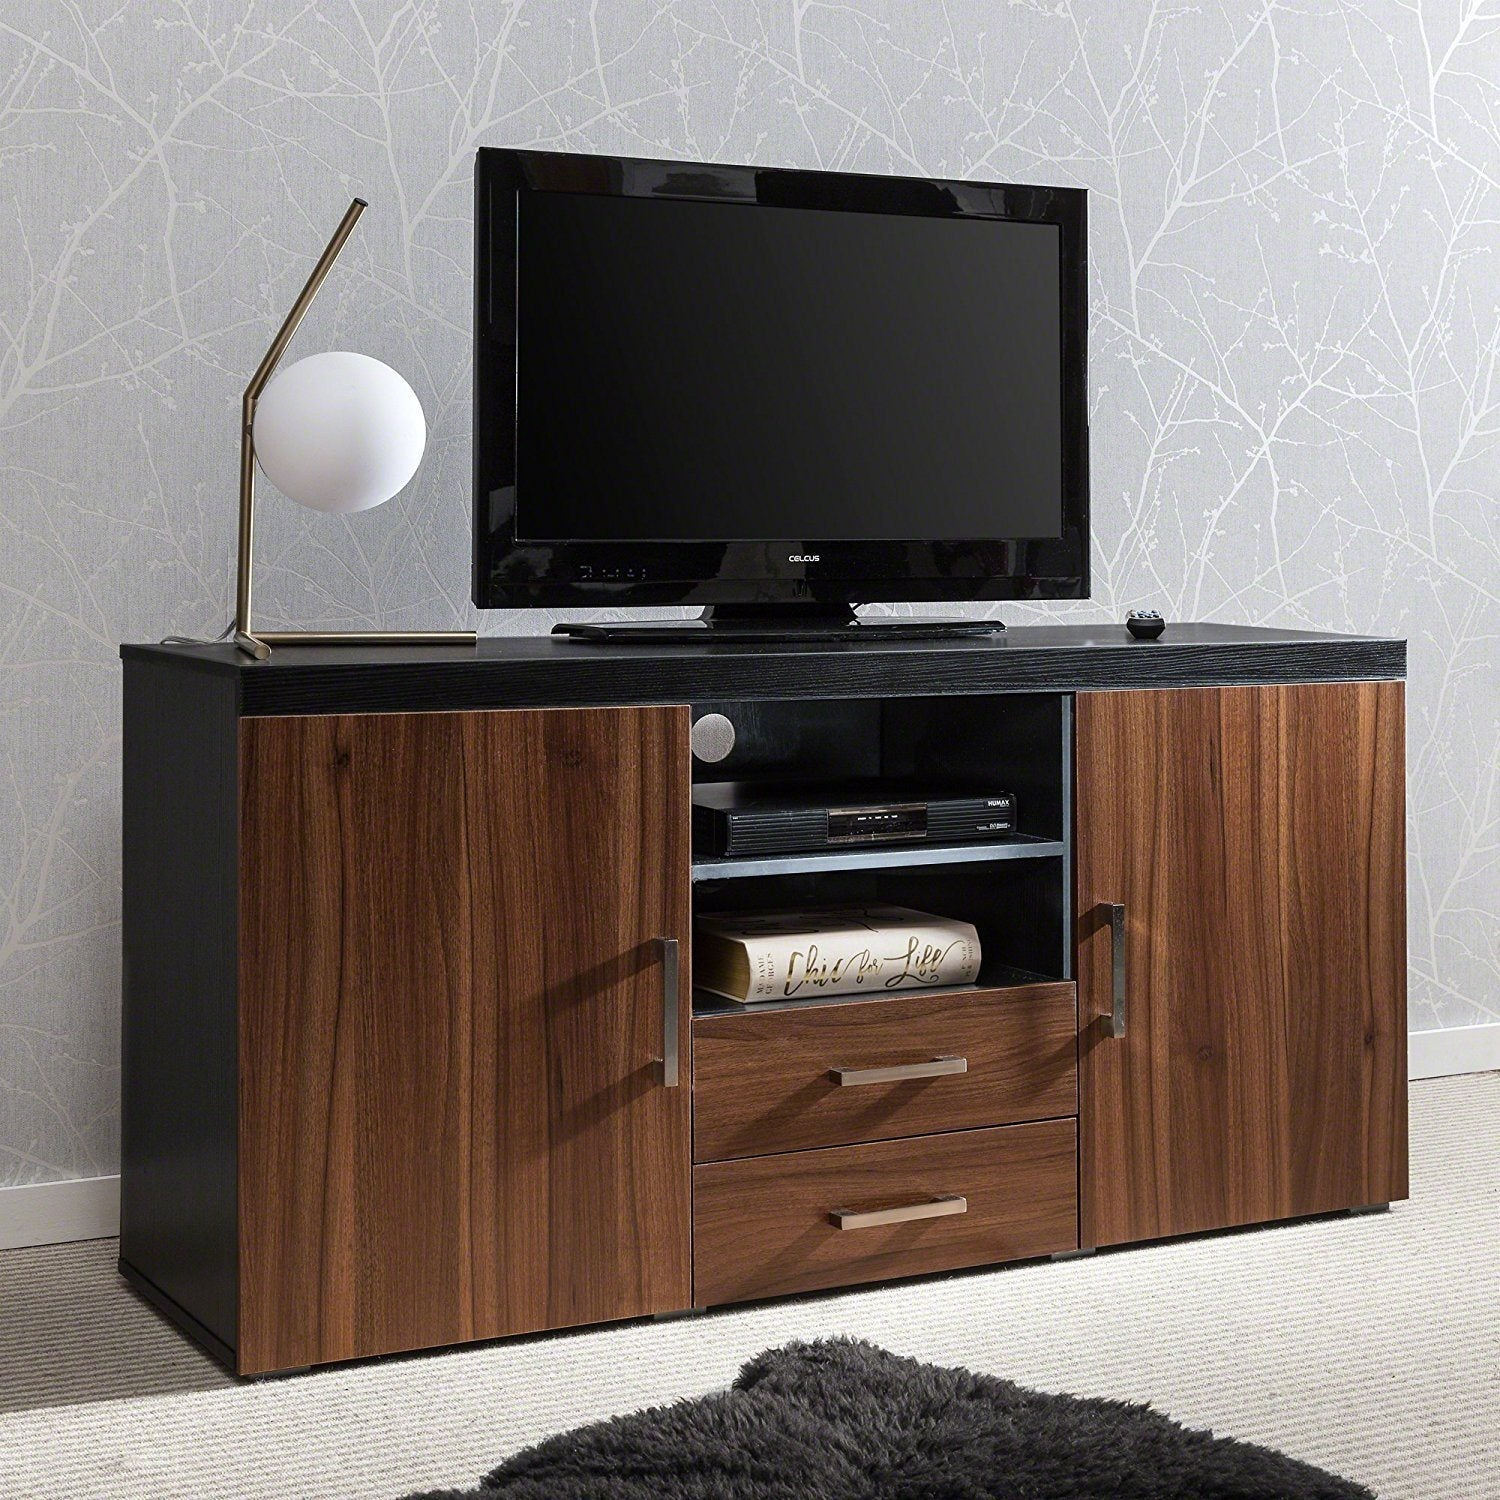 Laura James - TV Stand Cabinet Unit Cupboard Sideboard - Laura James